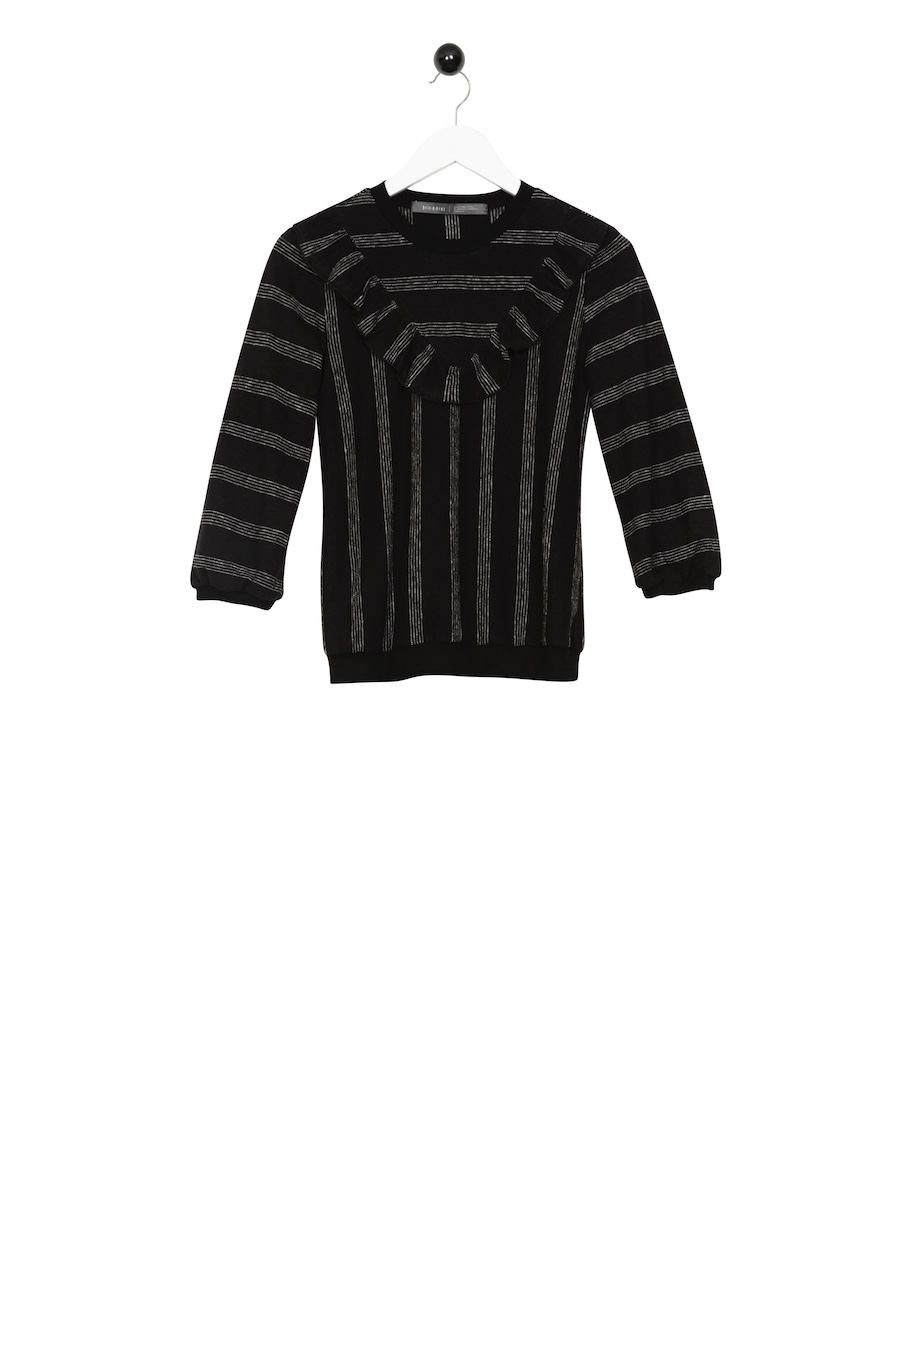 Bardigiano Sweater